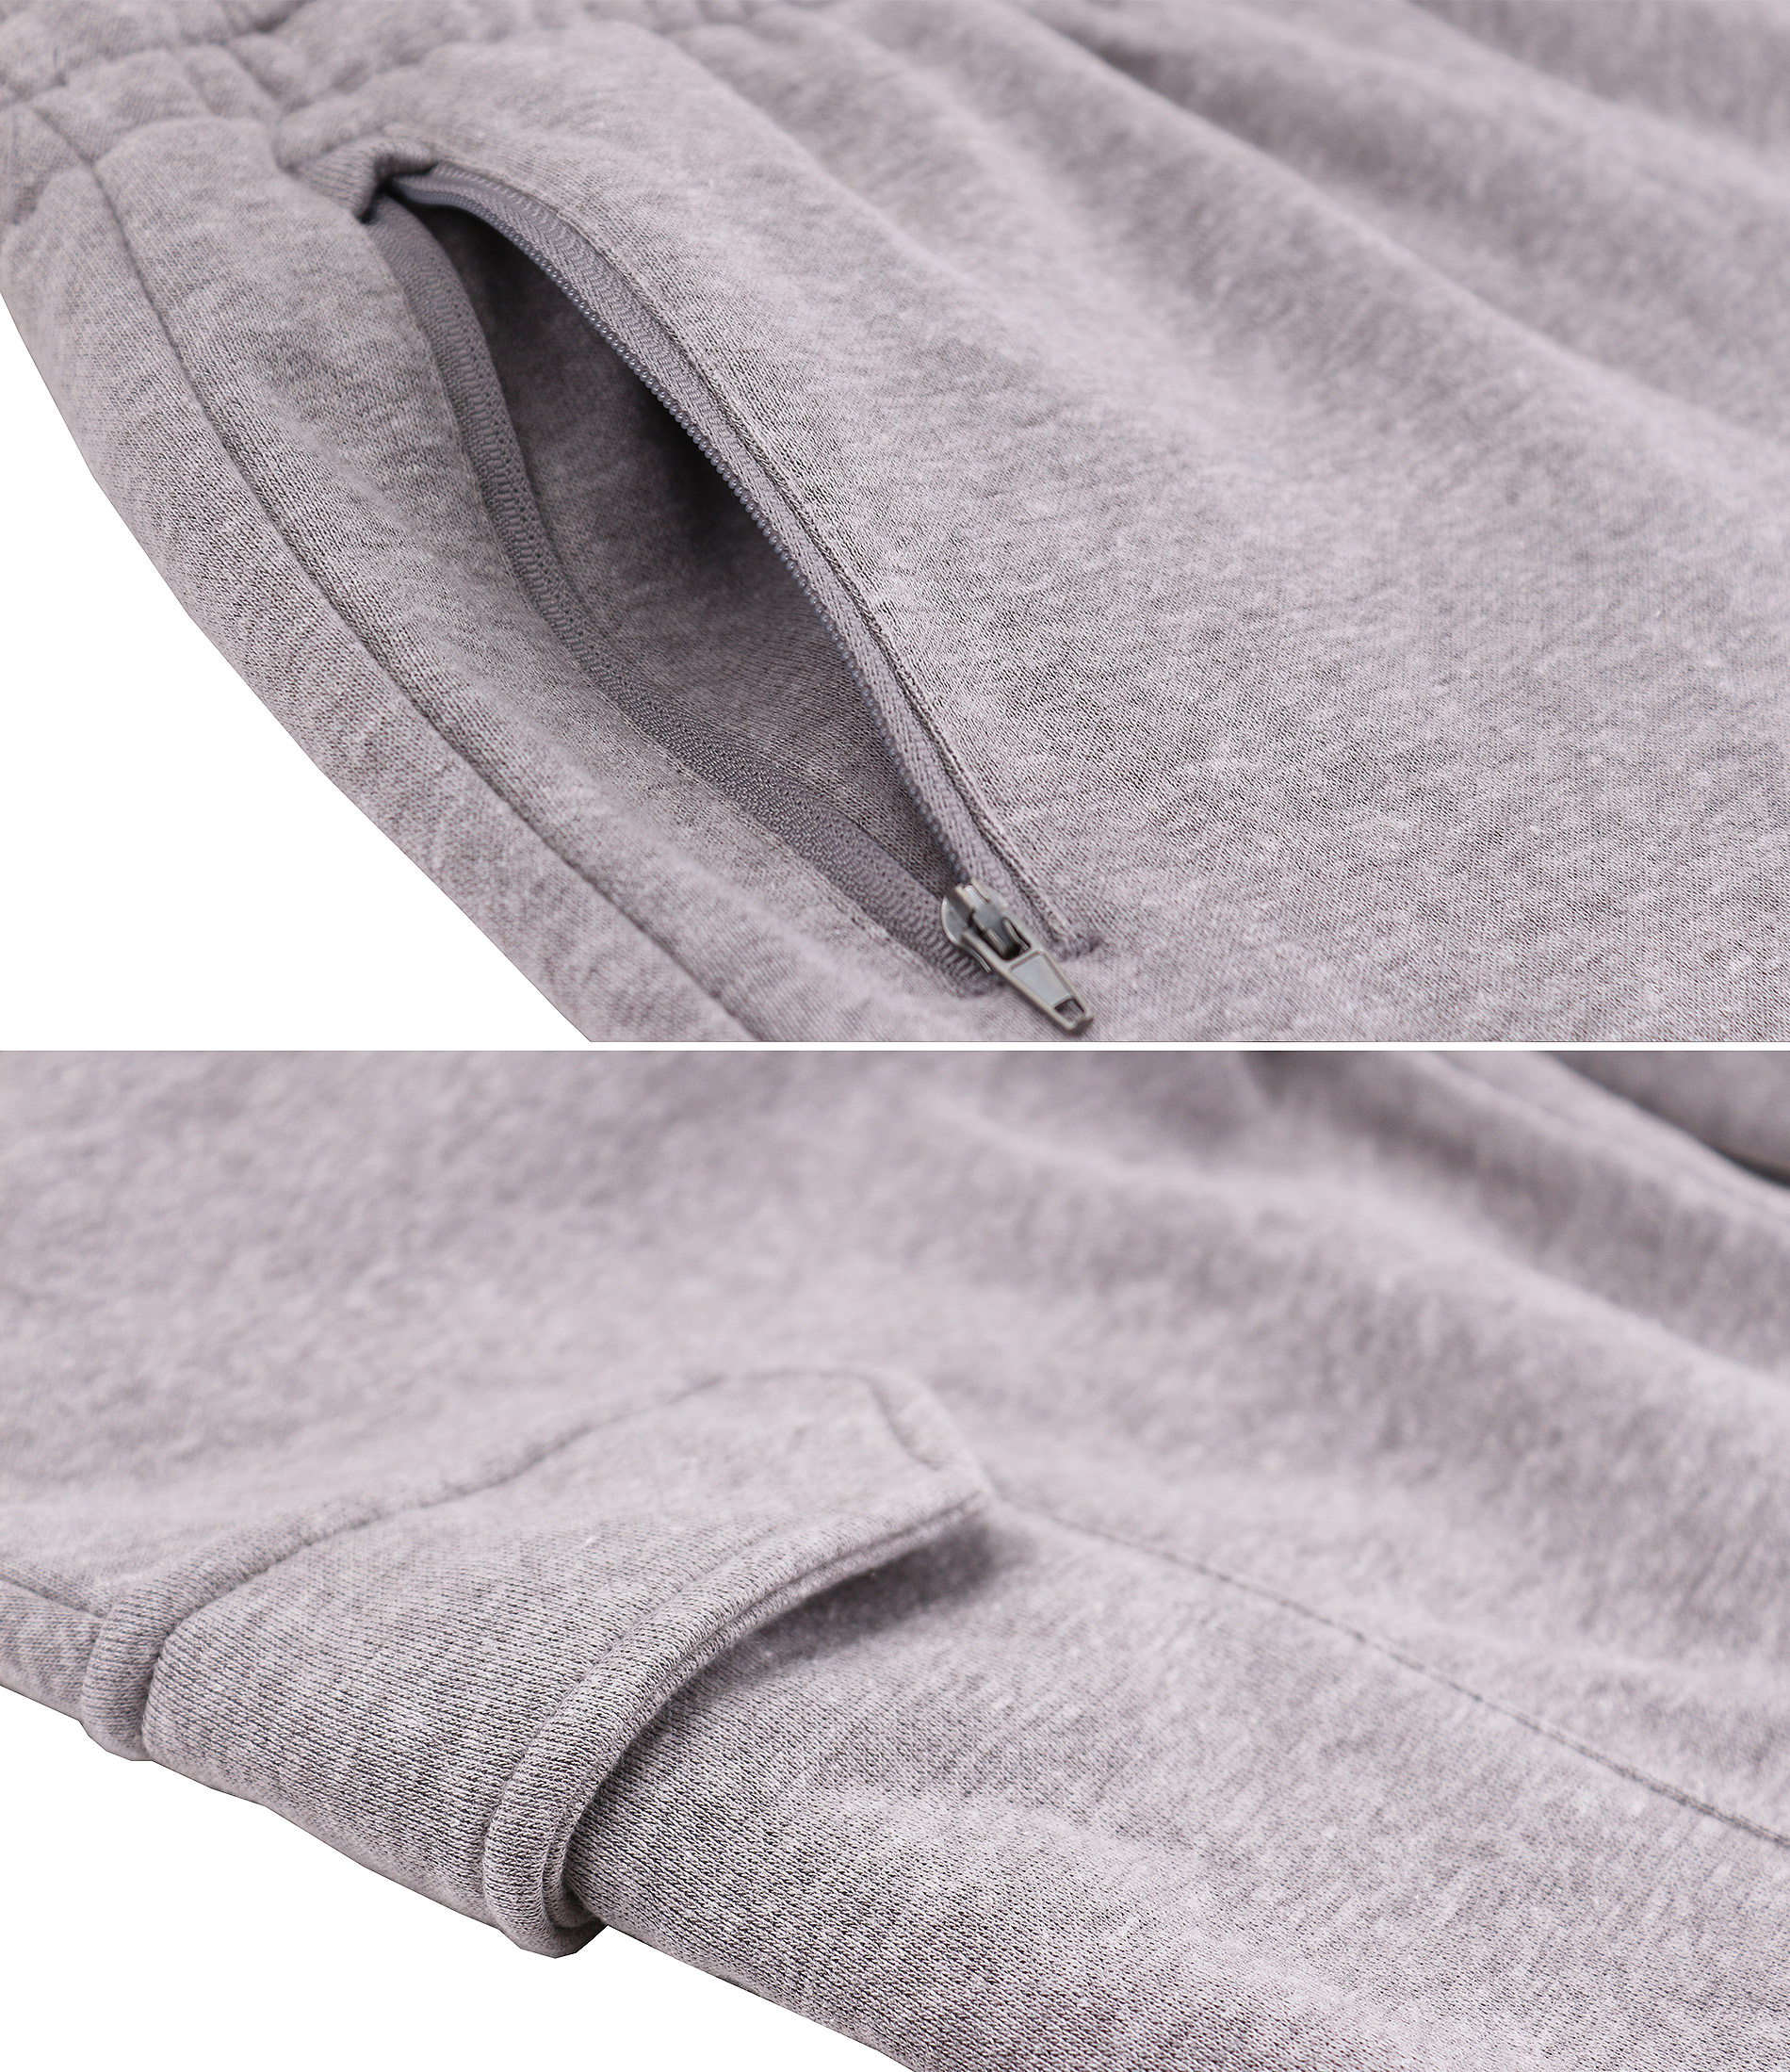 Men-039-s-Casual-Fleece-Sweatpants-Sport-Gym-Workout-Fitness-Cargo-Jogger-Pants thumbnail 10